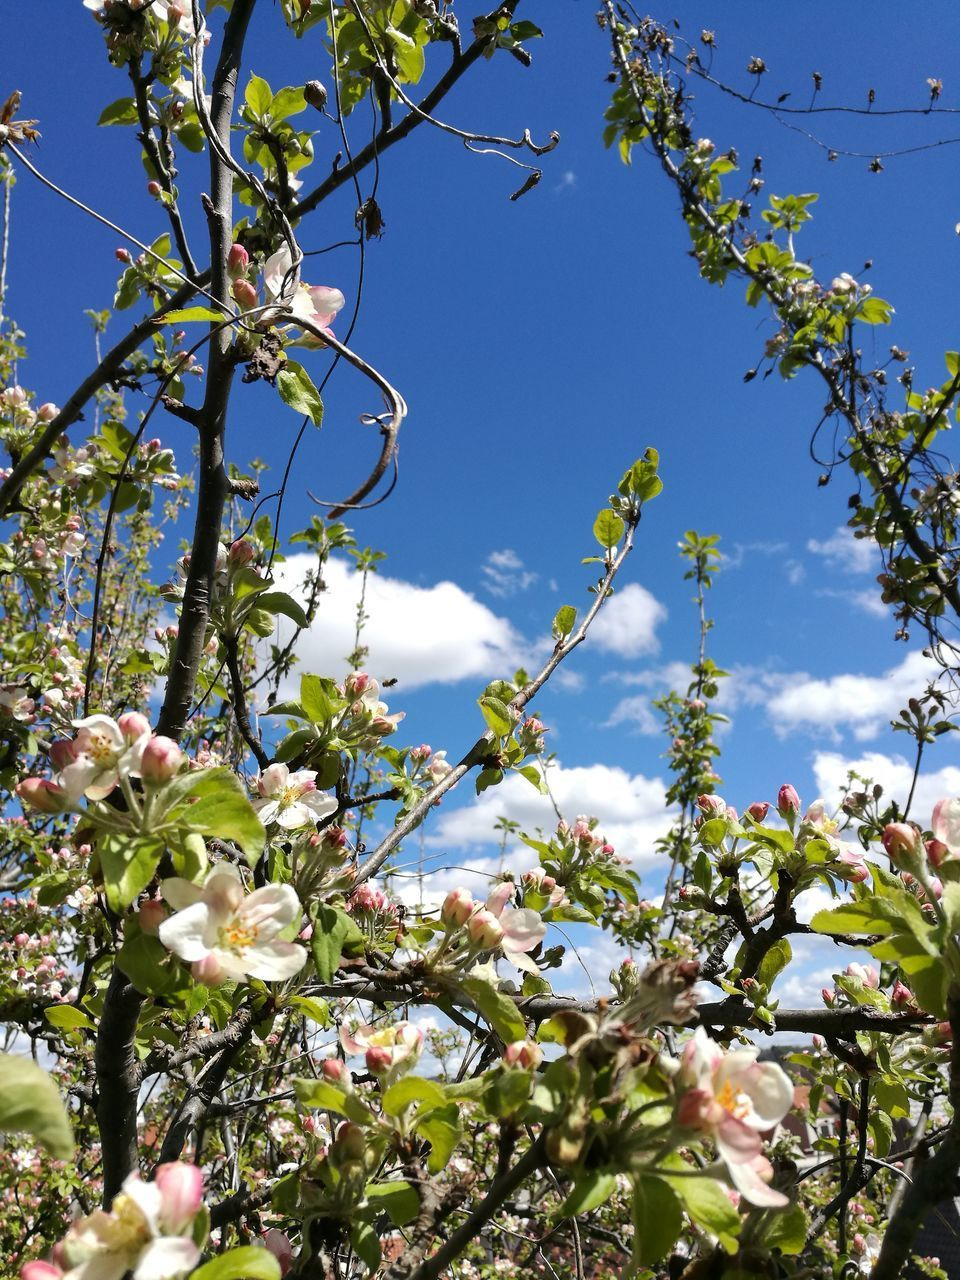 flower, growth, blossom, tree, fragility, nature, branch, beauty in nature, springtime, apple tree, freshness, apple blossom, orchard, botany, no people, day, twig, low angle view, spring, petal, outdoors, blooming, close-up, sky, flower head